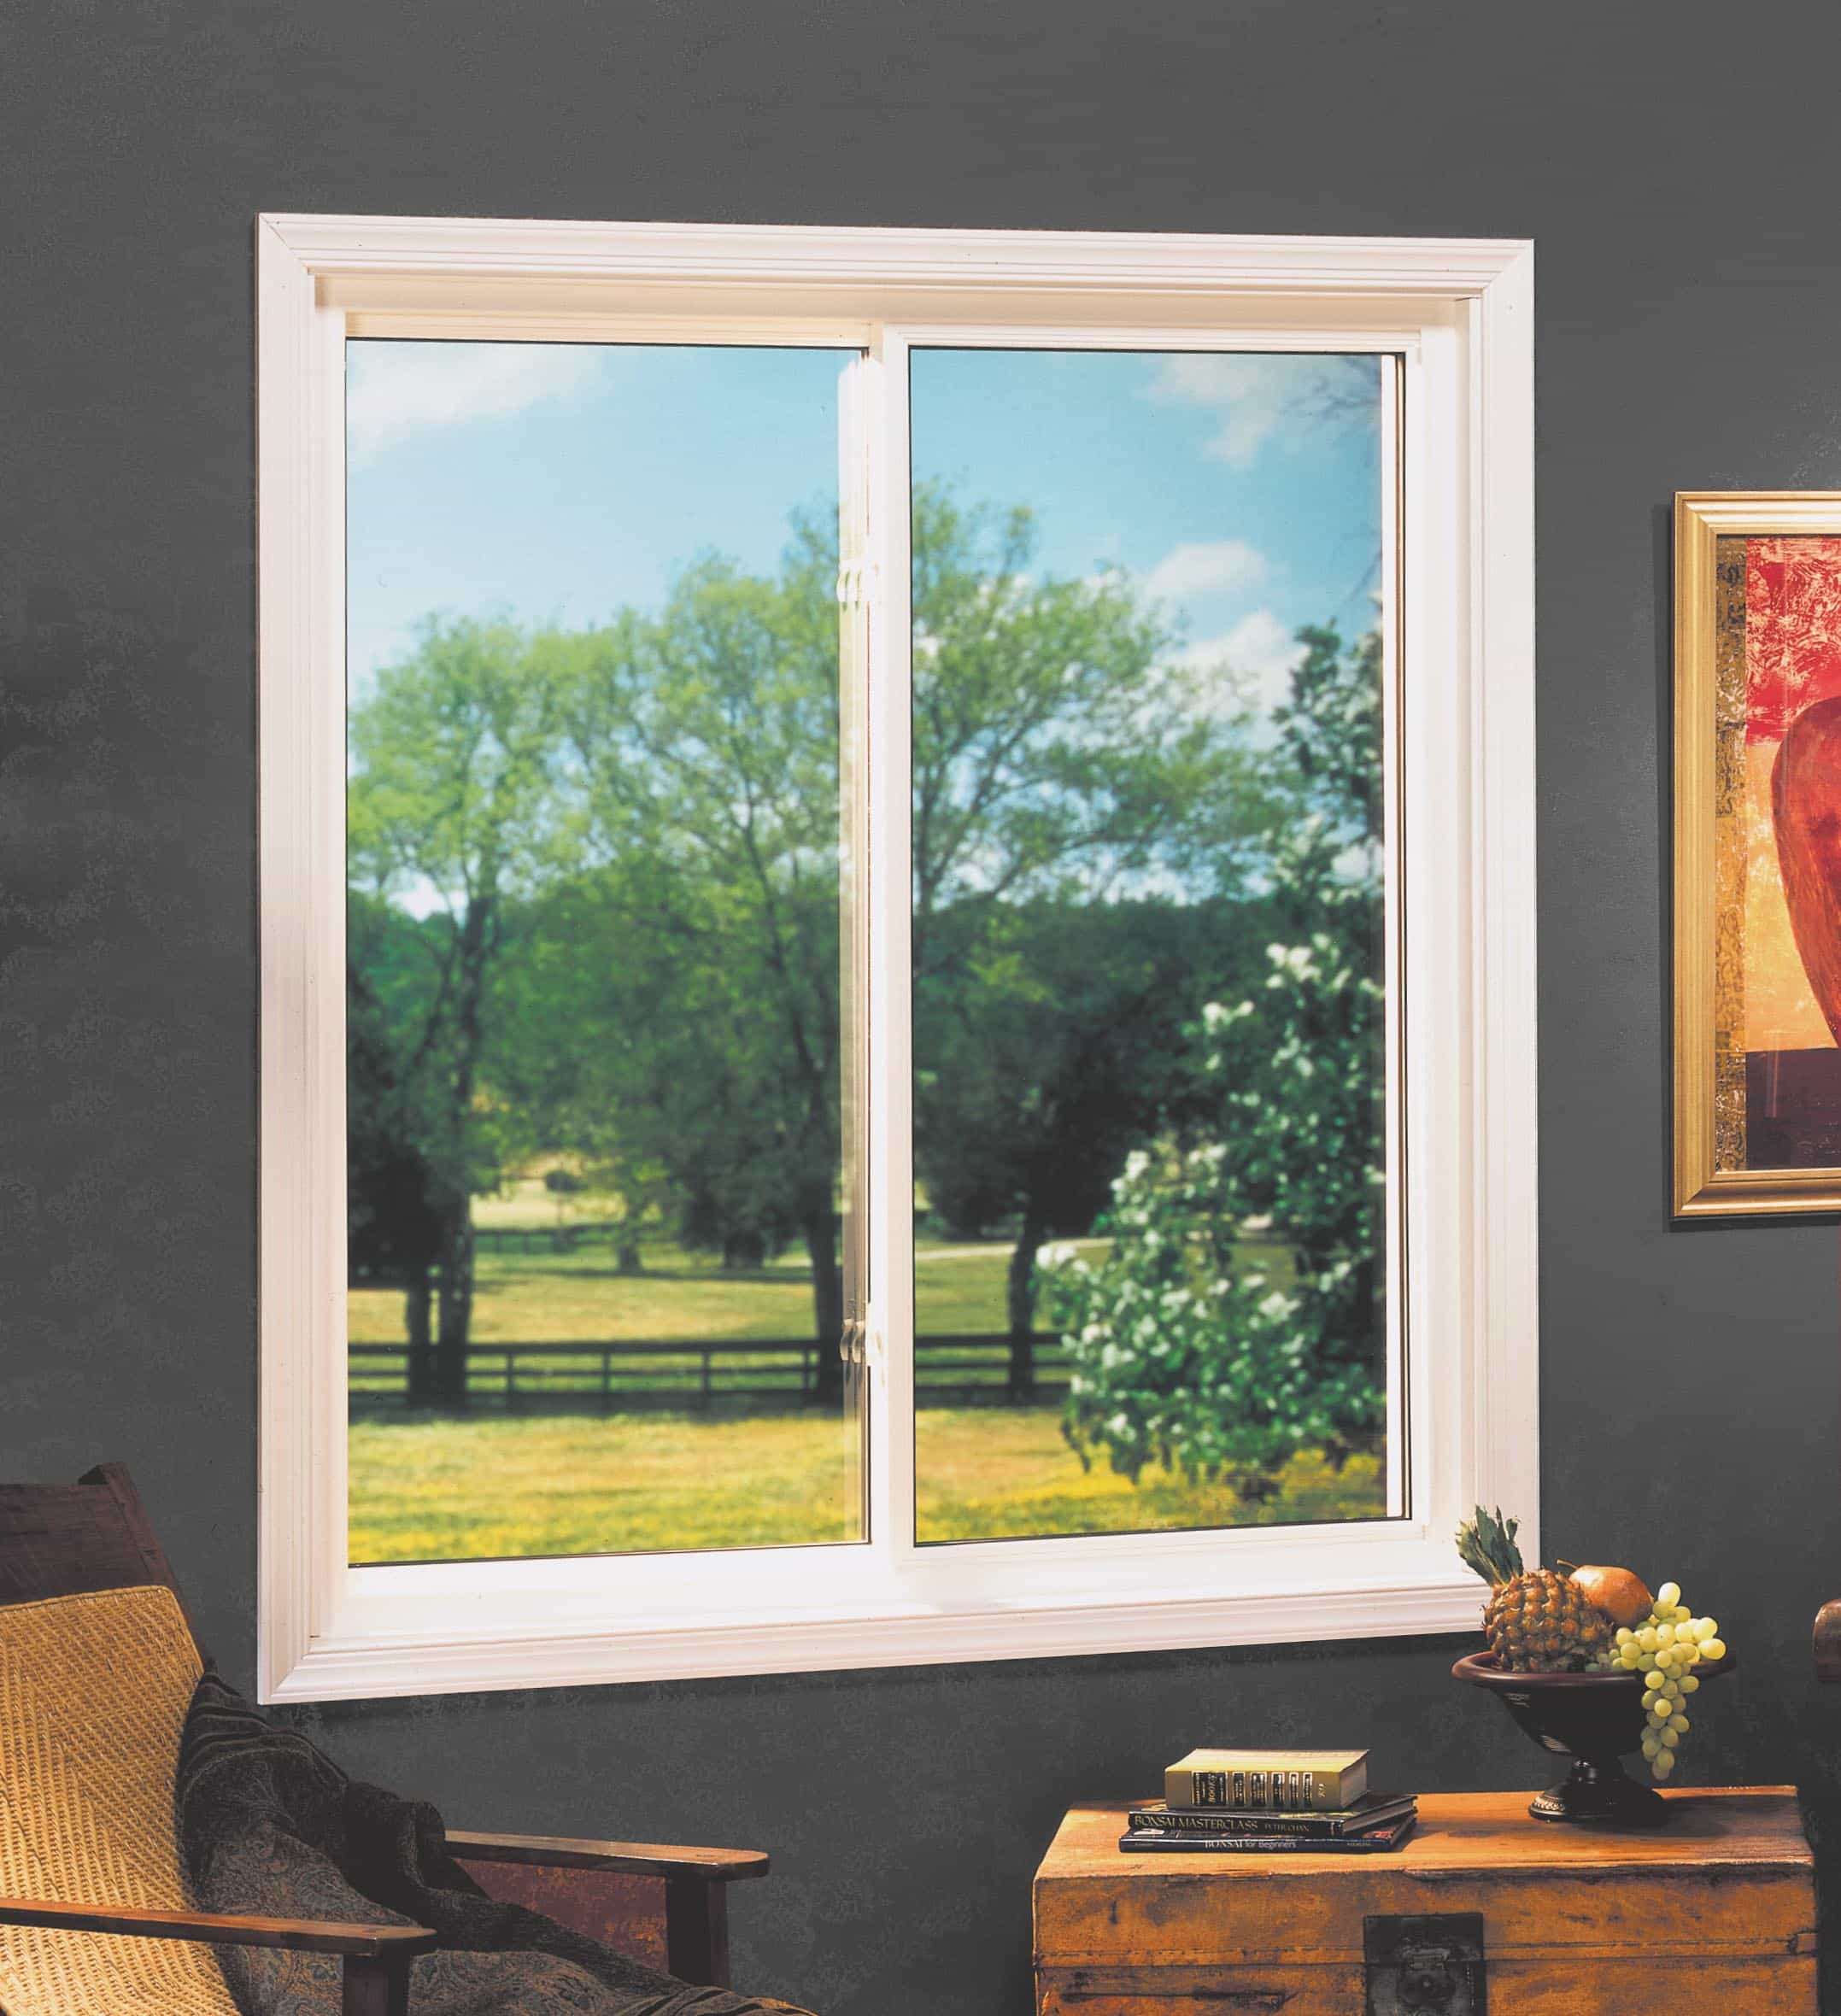 Pella Sliding Doors >> Replacement Sliding Windows - American Thermal Window